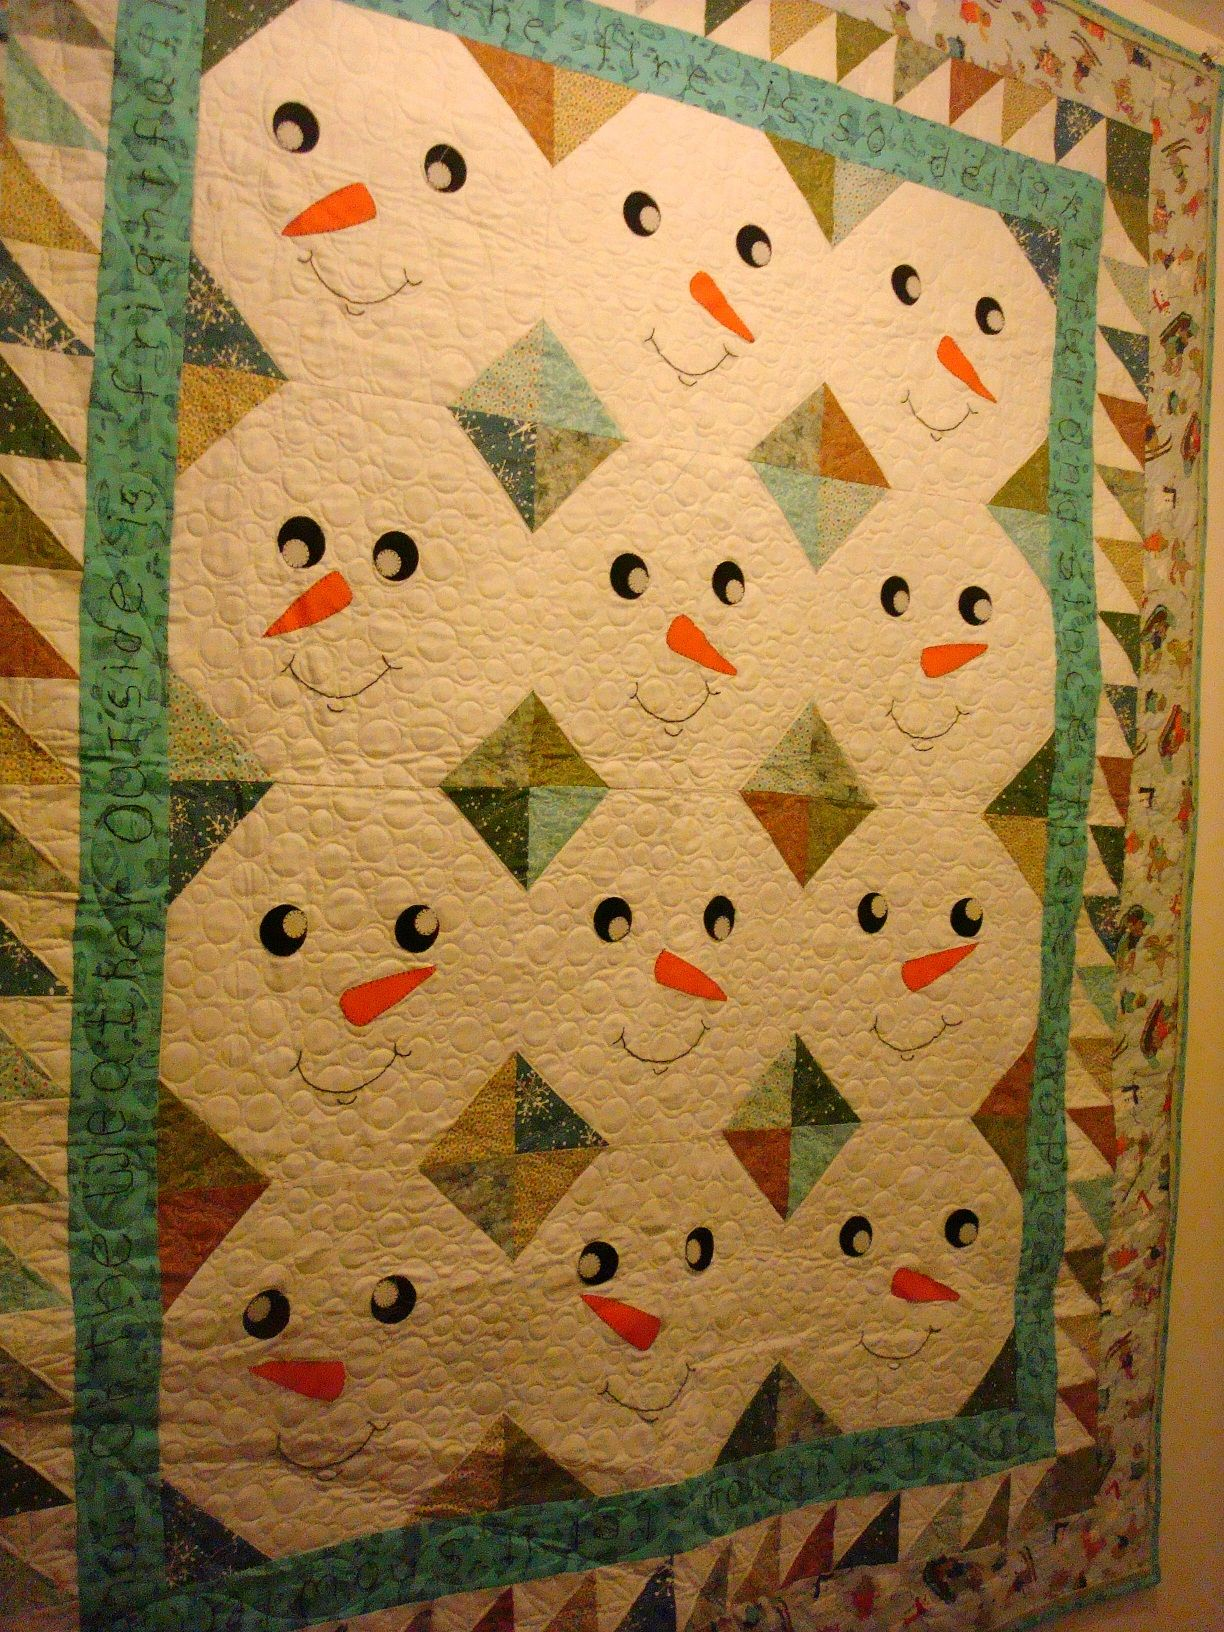 Snowman quilt using Snowball blocks Click to view large image ...